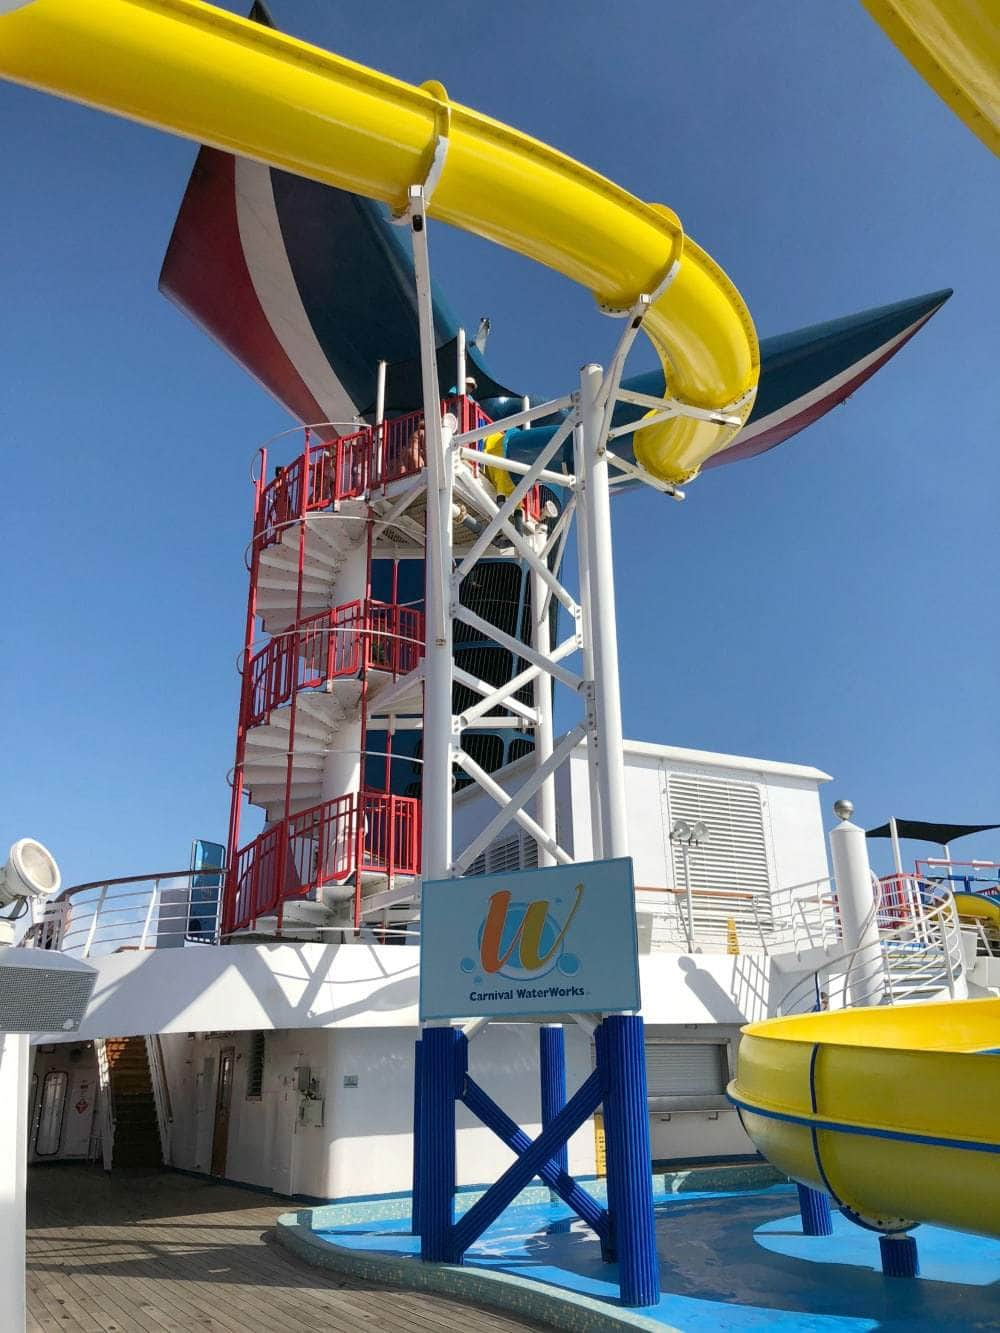 Best Cruise Activities for Tweens and Teens - Carnival Cruise - WaterWorks